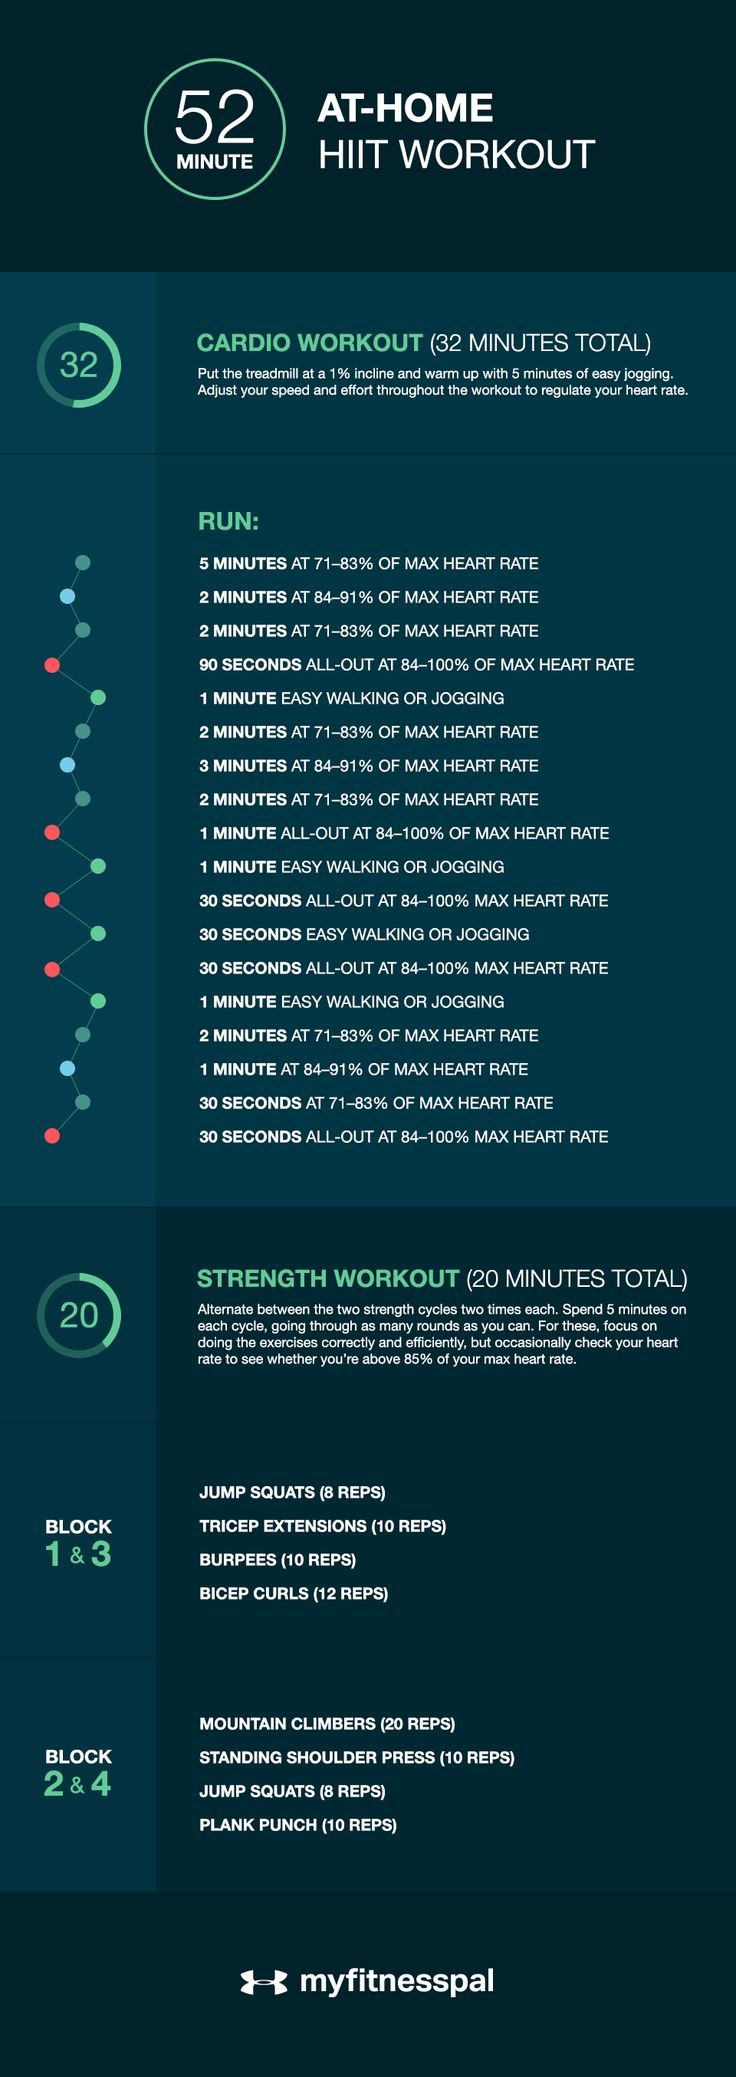 Finding a fitness routine that not only offers a great workout but also keeps you engaged for the long haul can be difficult. It is for these reasons that Orangetheory Fitness has risen in popularity in recent years. Orangetheory workouts rely on heart rate-based interval training that combines cardiovascular and strength work set to motivational …